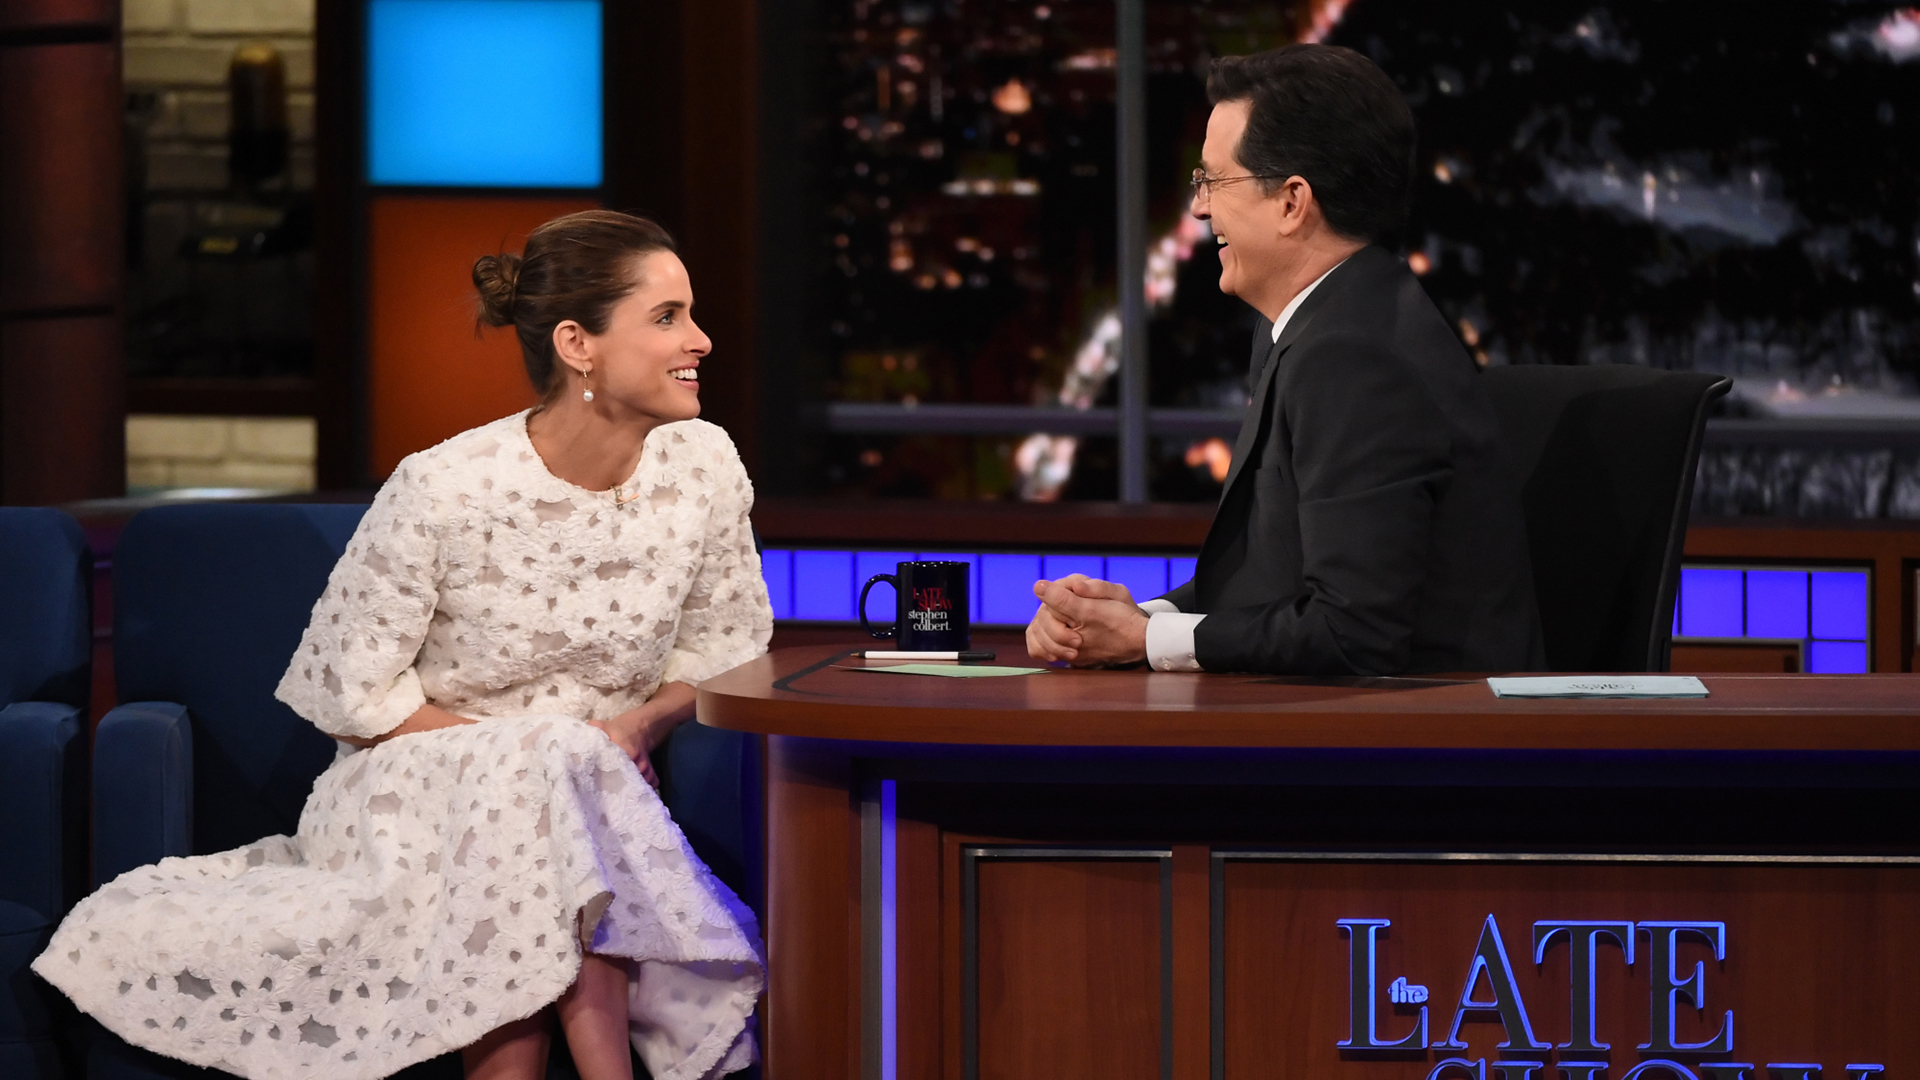 Amanda Peet and Stephen Colbert